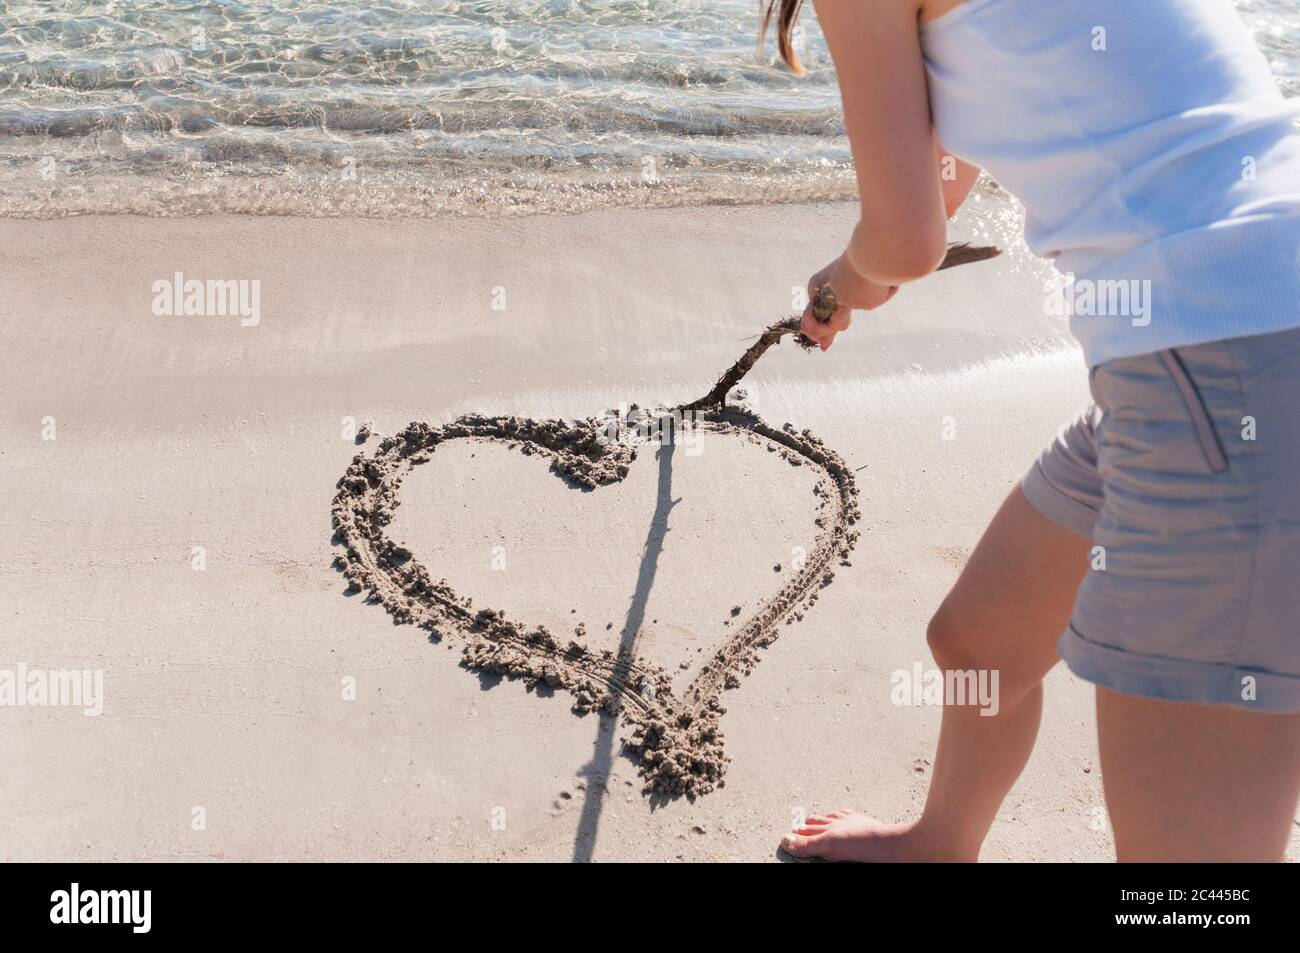 Crop view of woman on the beach  scratching heart in wet sand with wood stick, Sardinia, Italy Stock Photo